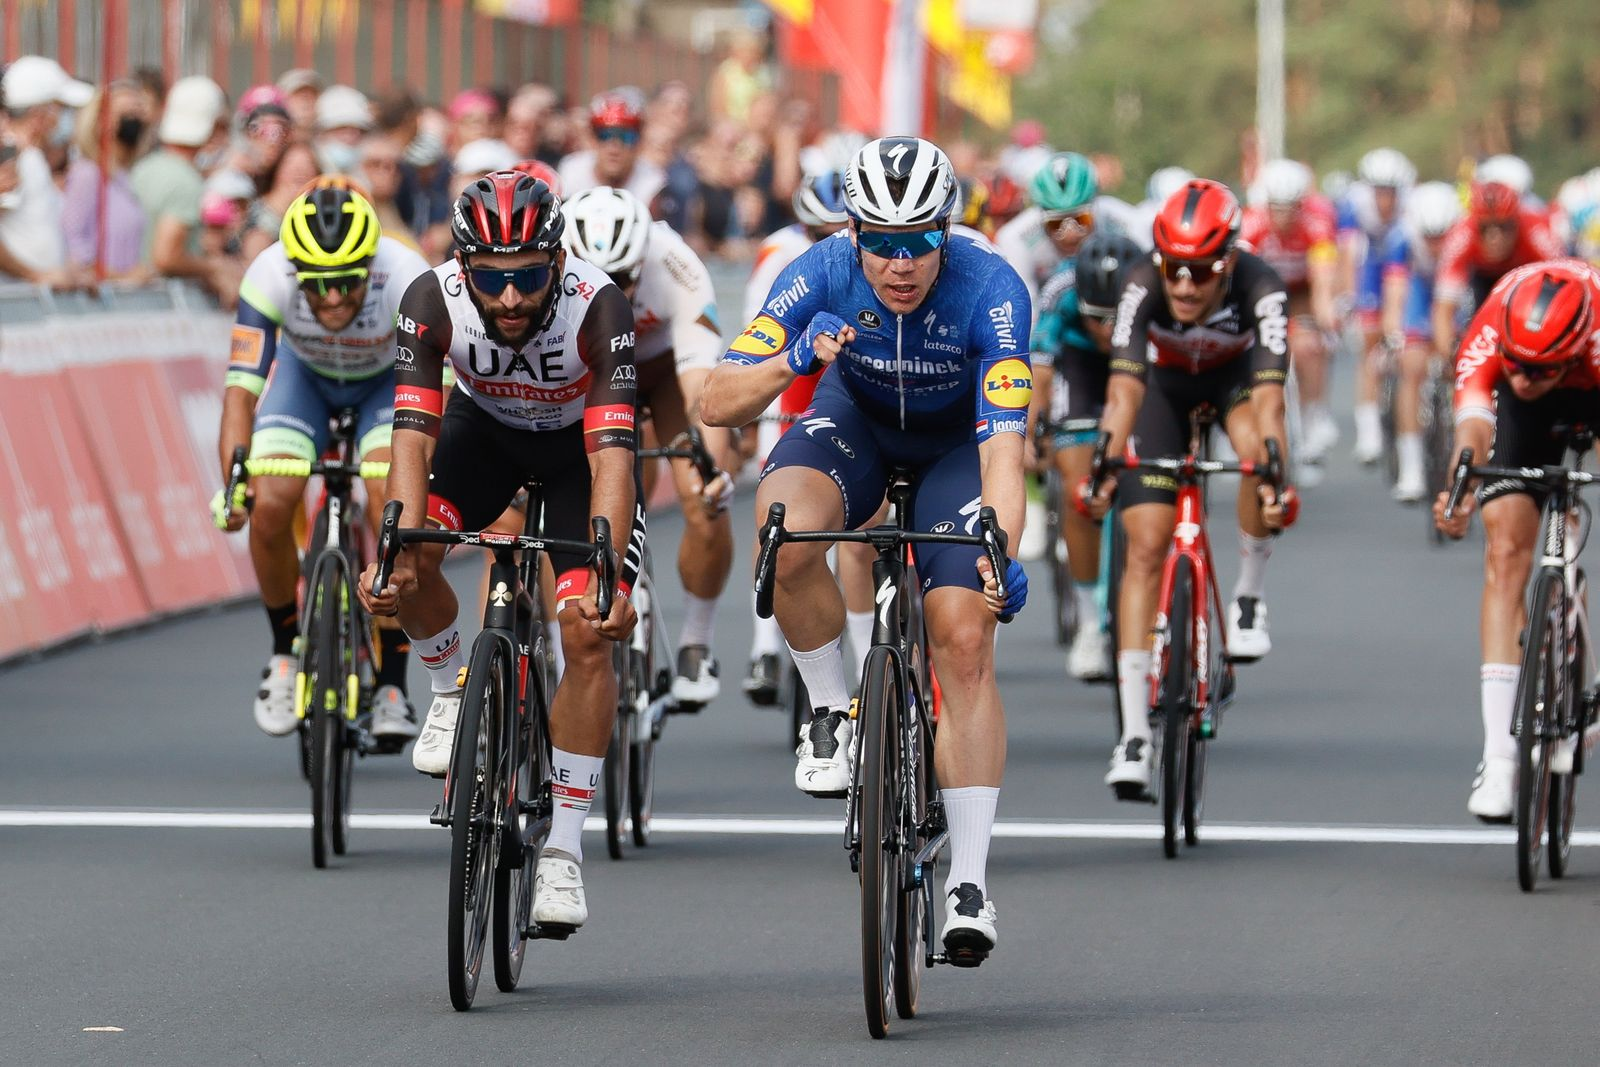 CYCLING TOUR DE WALLONIE STAGE 2